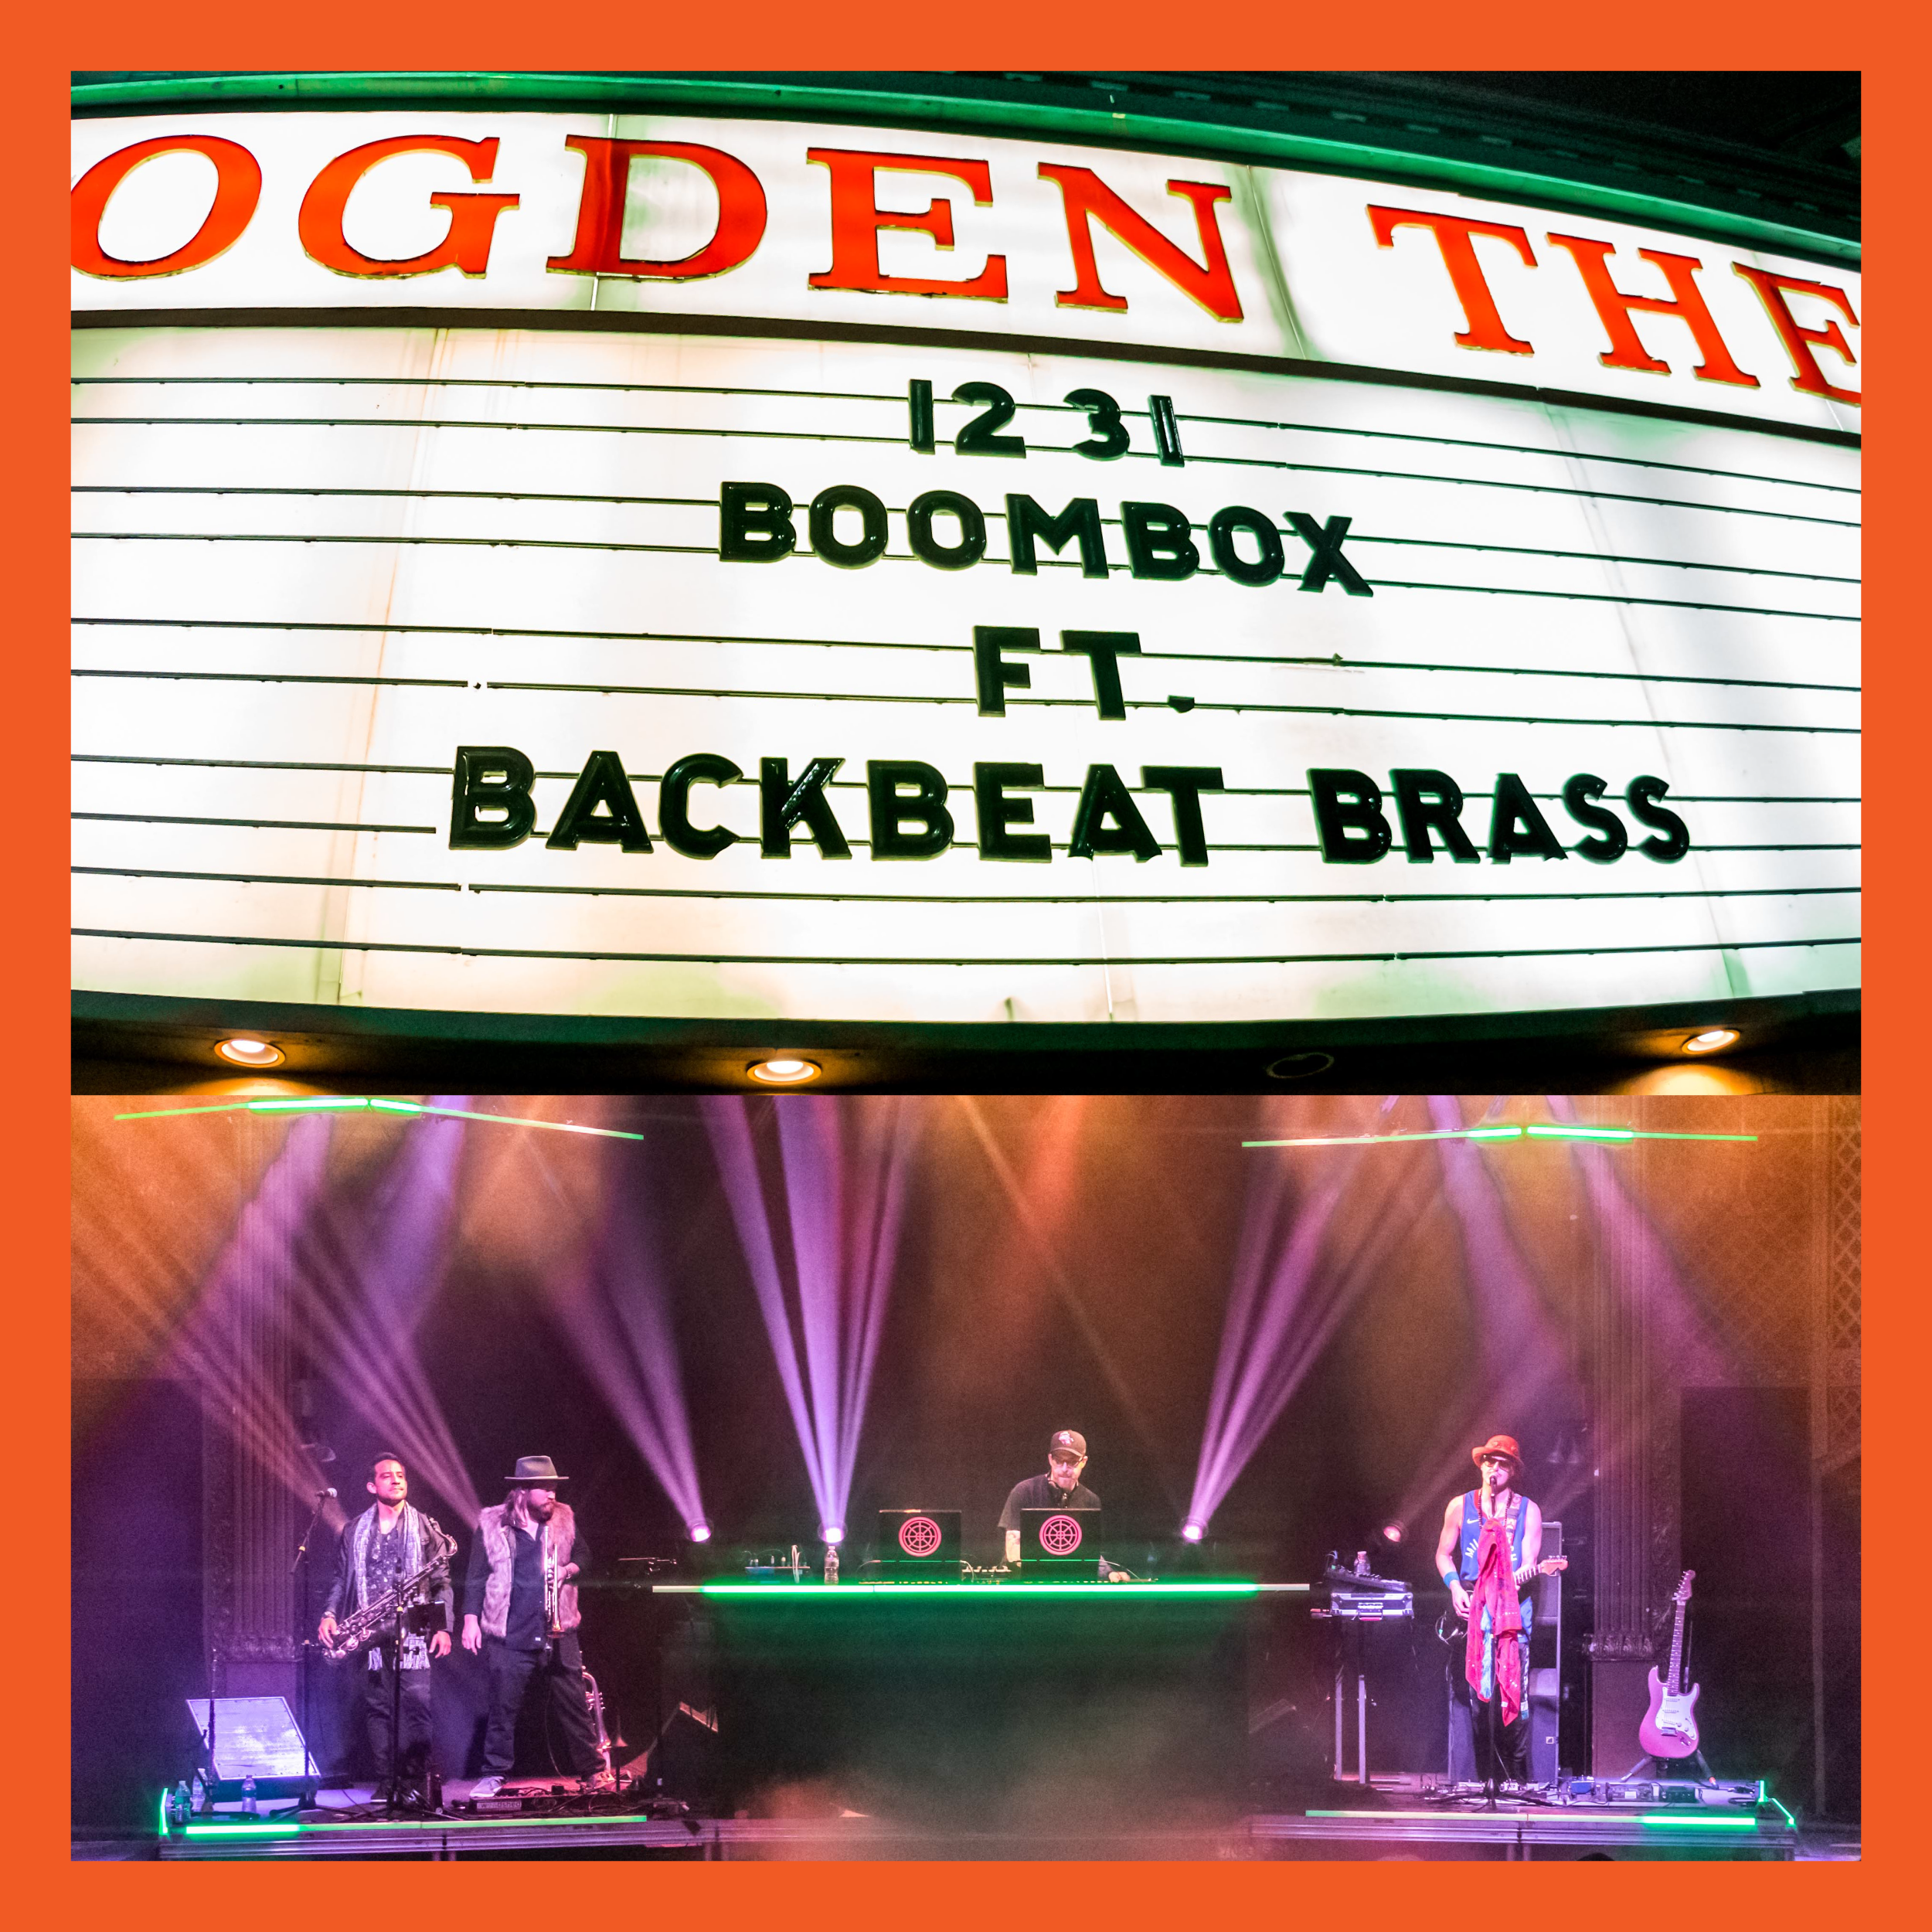 NEW LIVE ALBUM FEAT. BACKBEAT BRASS